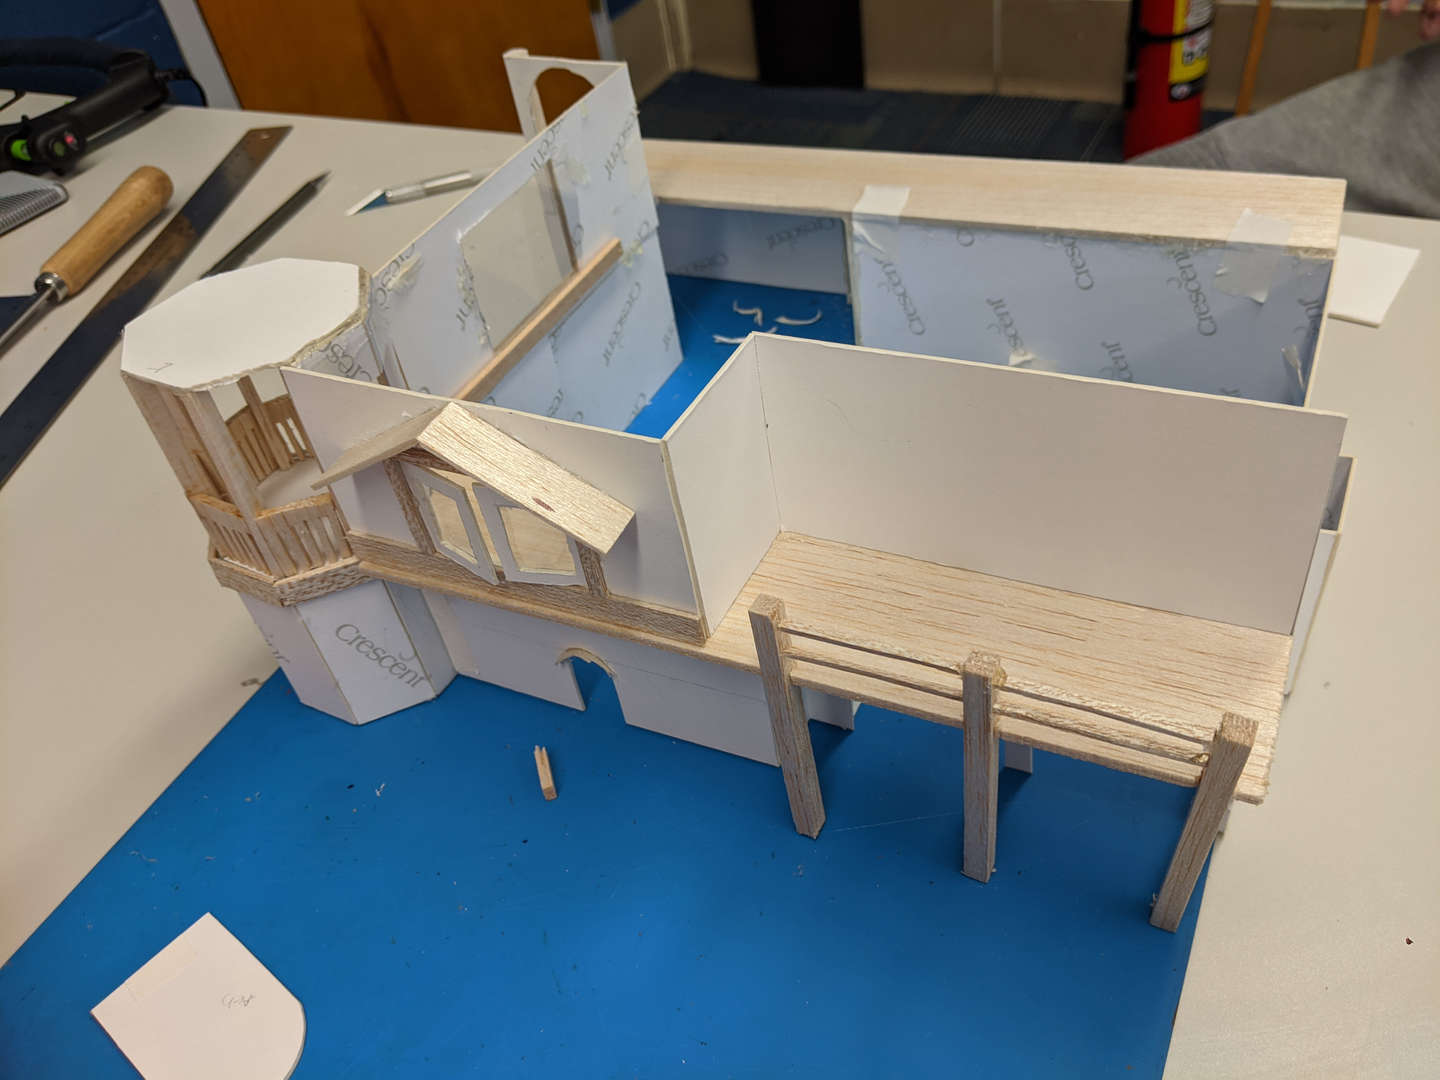 3-D model of a house